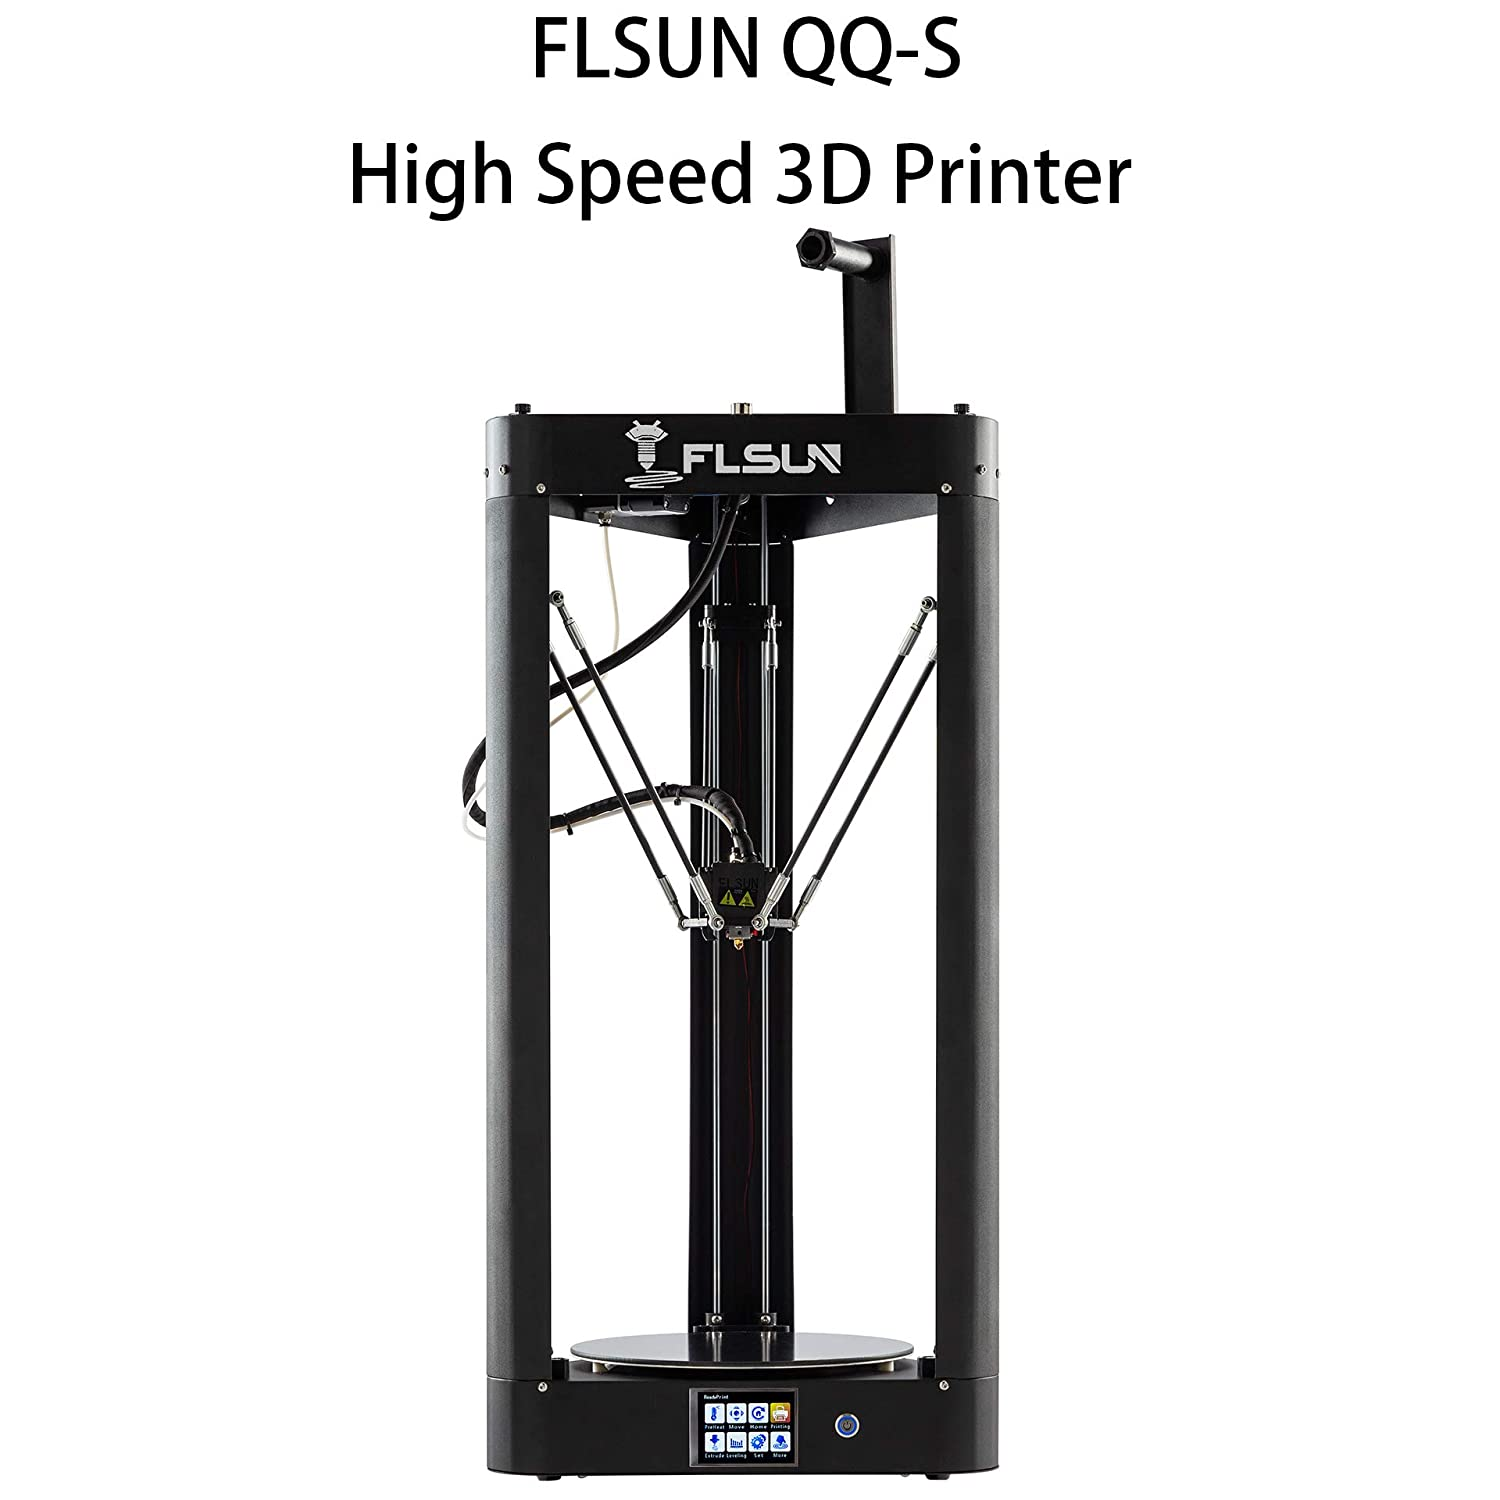 FLSUN QQ-S 90% Pre-assembled Delta 3D Printer Lattice galss platform Large Printing Size φ255X360mm, Auto Leveling,Titan Extruder,Touch Screen,WIFI Remote Control,Filament 1.75 mm PLA